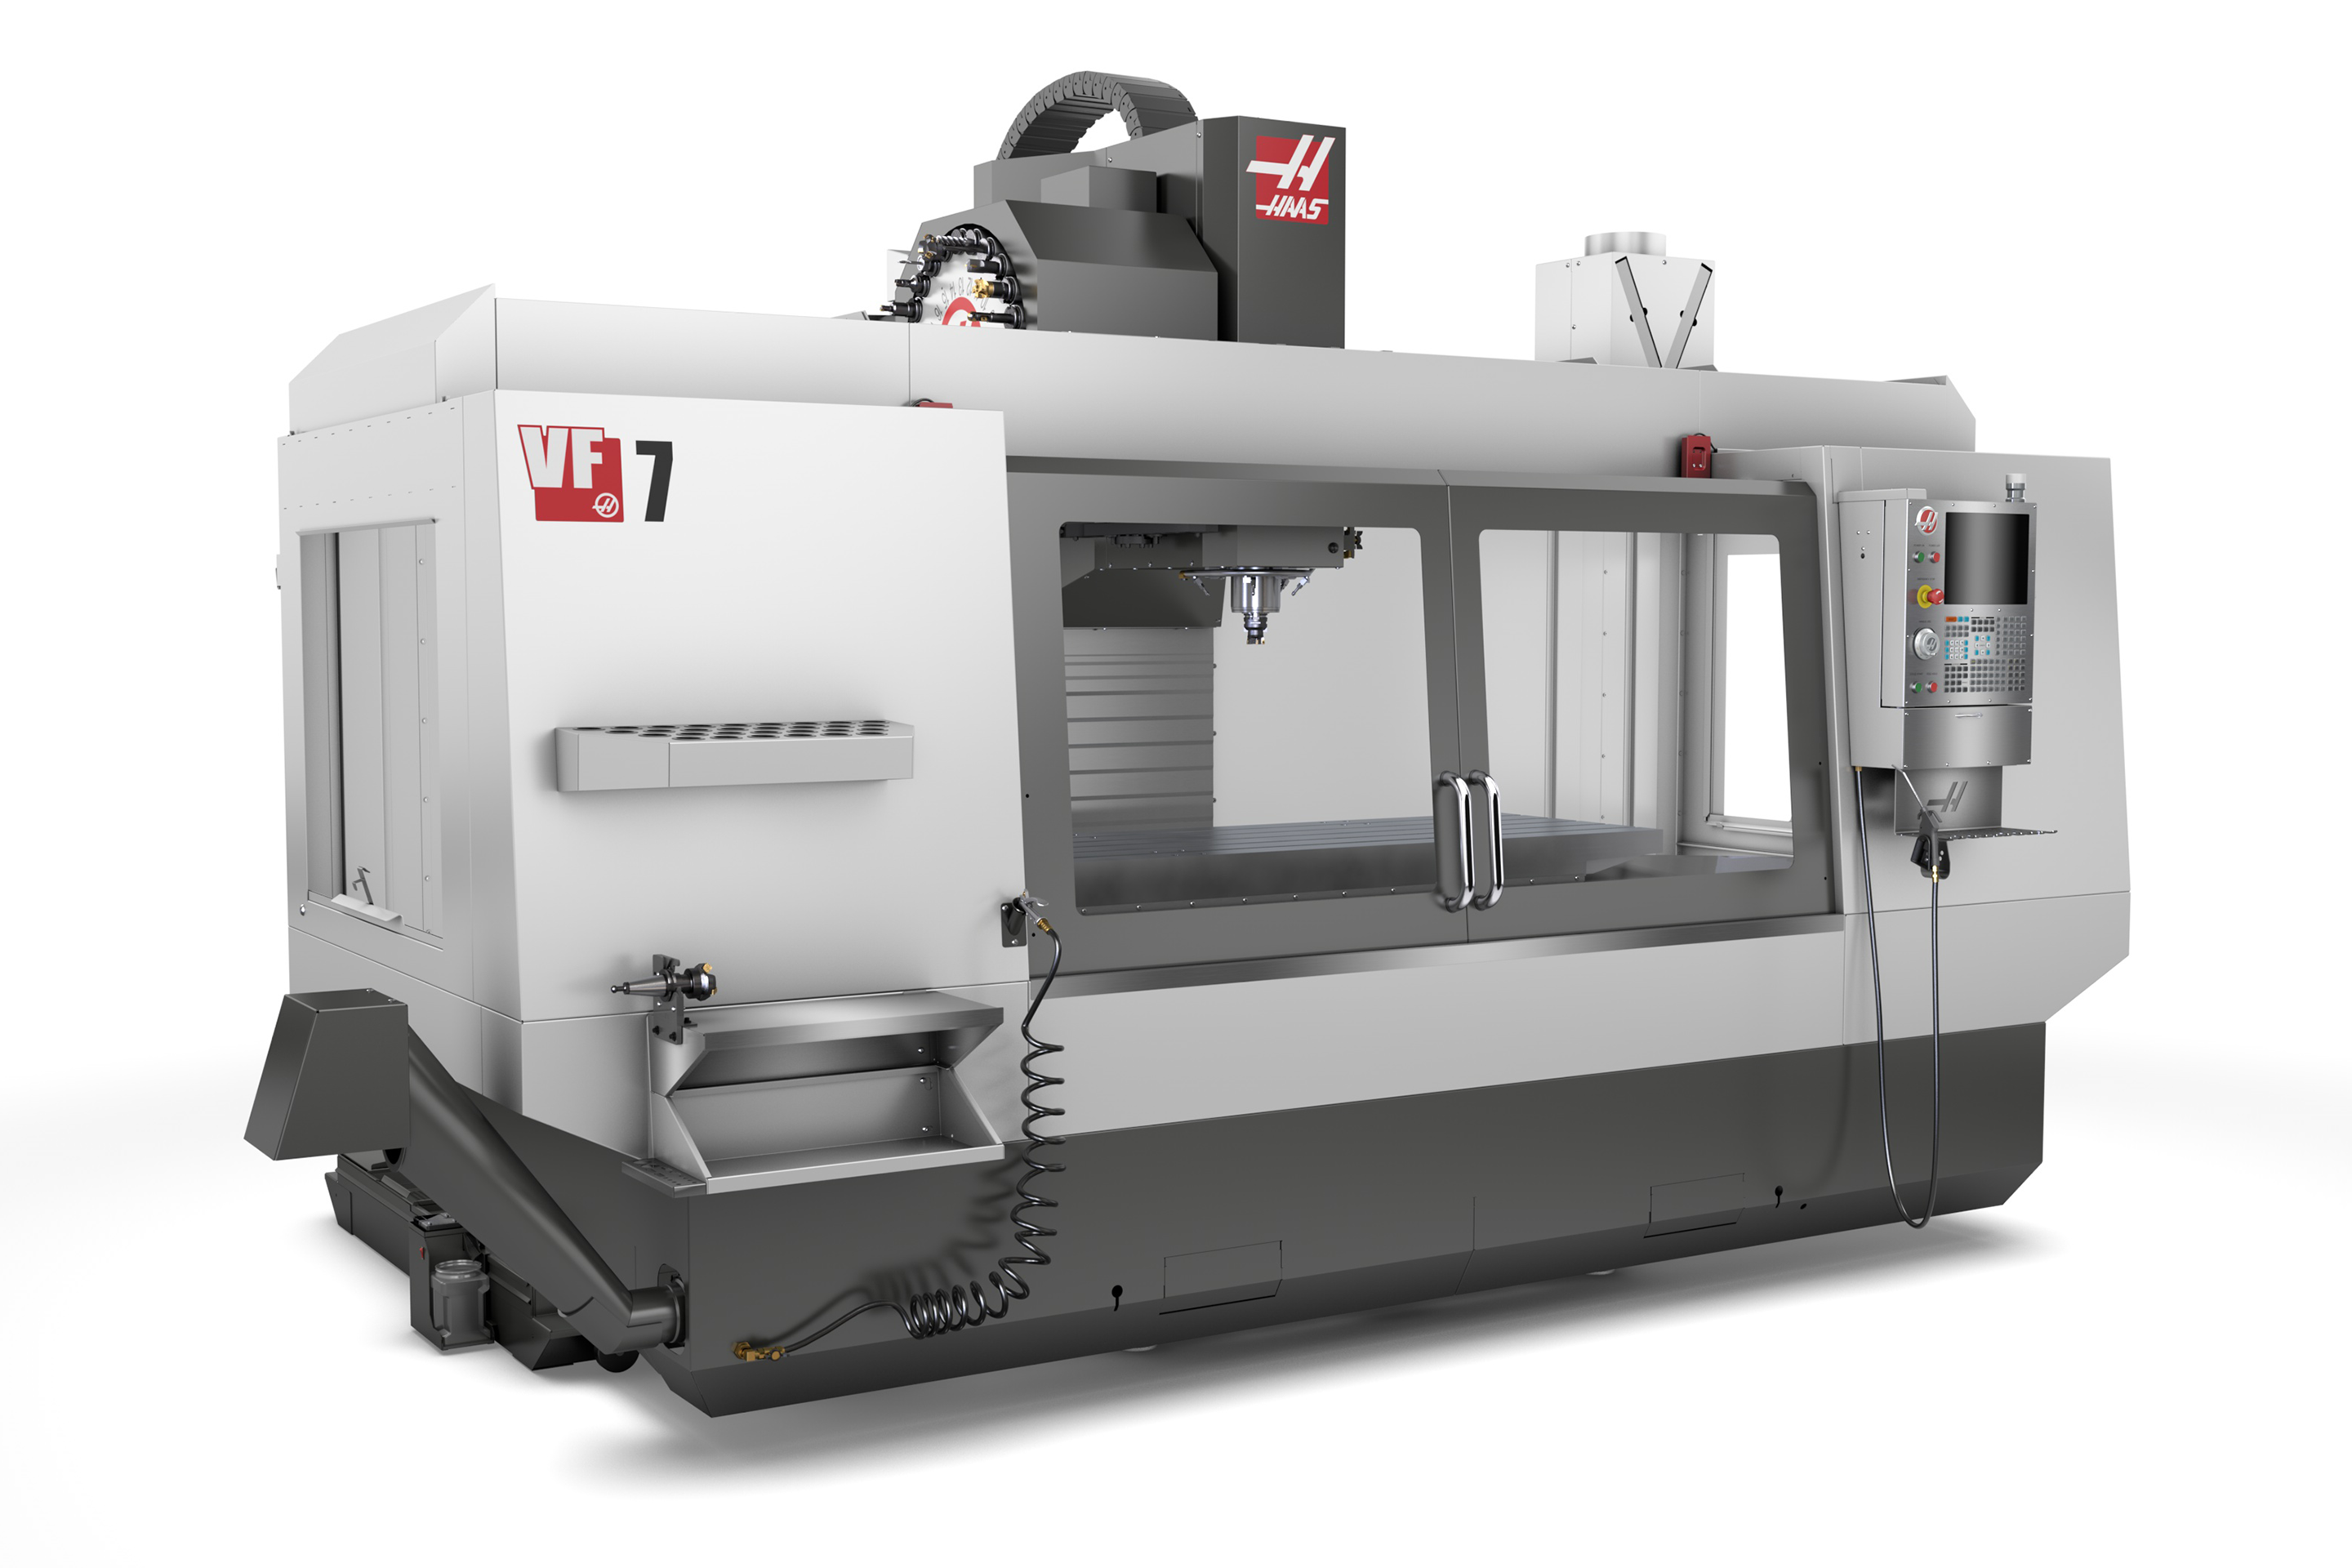 Haas Vf 3 Electrical Manual 1994 Vf3 Rigid Tap Encoder Wiring Diagram 555 Lbs Optimized Specifically Hd Projectors Martin Chevalier Surface Johnson Band Saw Full Tool Die Young Mfg Mori Seiki Ll 8 Sl 6 Turning Centers